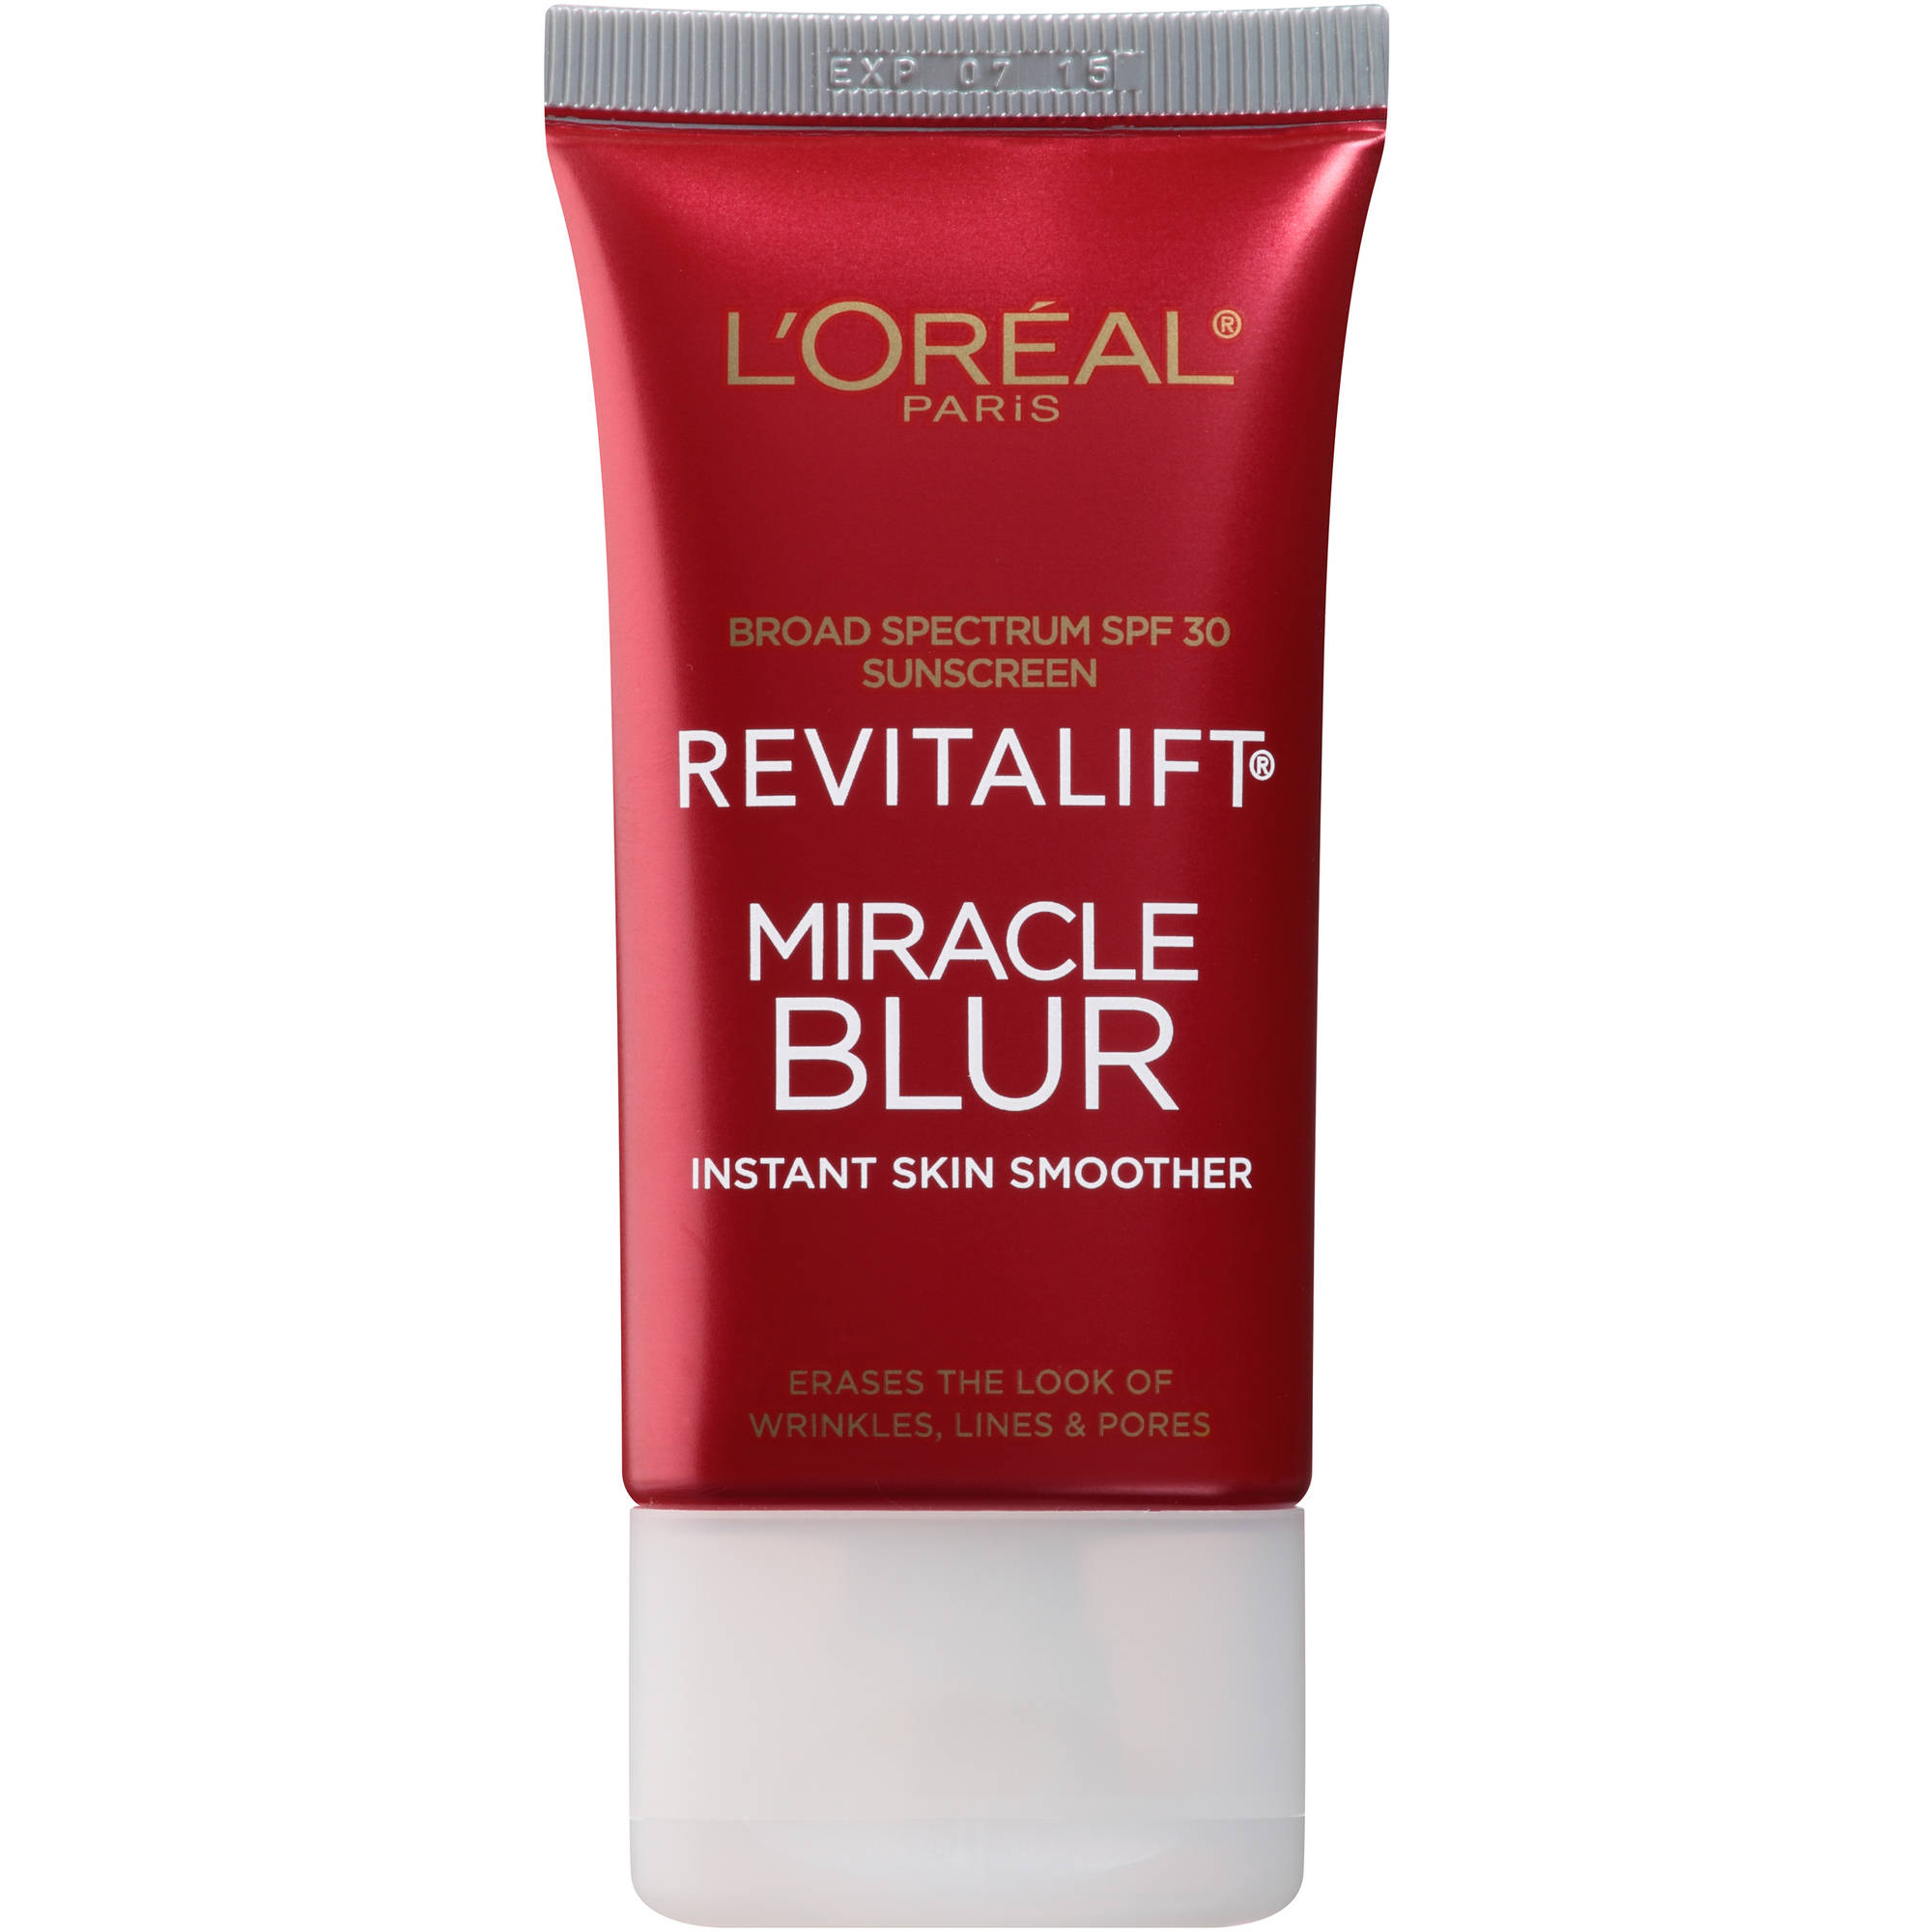 L'Oreal Paris Revitalift Miracle Blur Instant Skin Smoother Finishing Cream, 1.18 fl oz